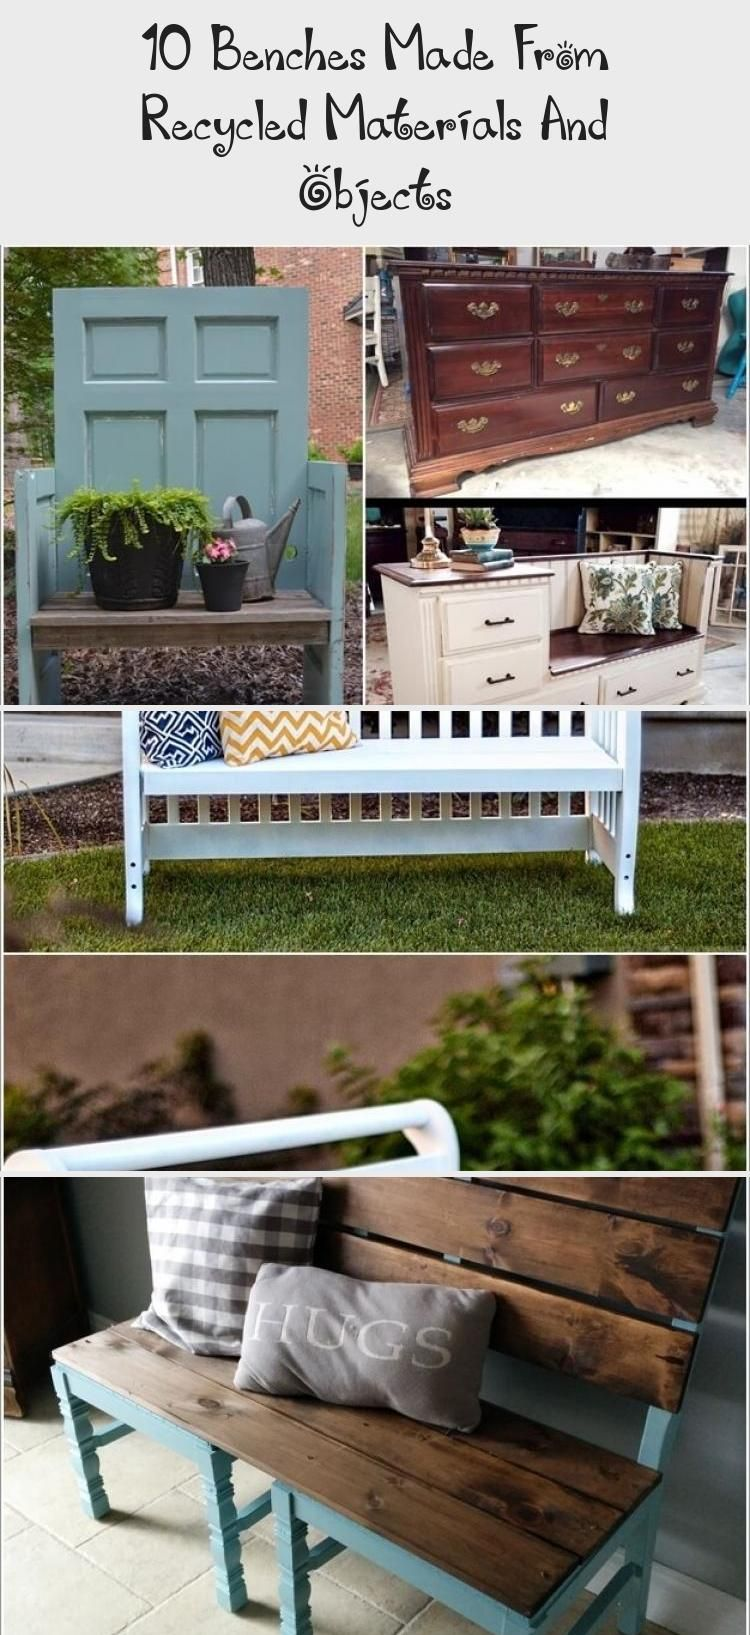 10 Benches Made From Recycled Materials And Objects Home Decor Diy Recycled Materials Diy Decor Recycled Door